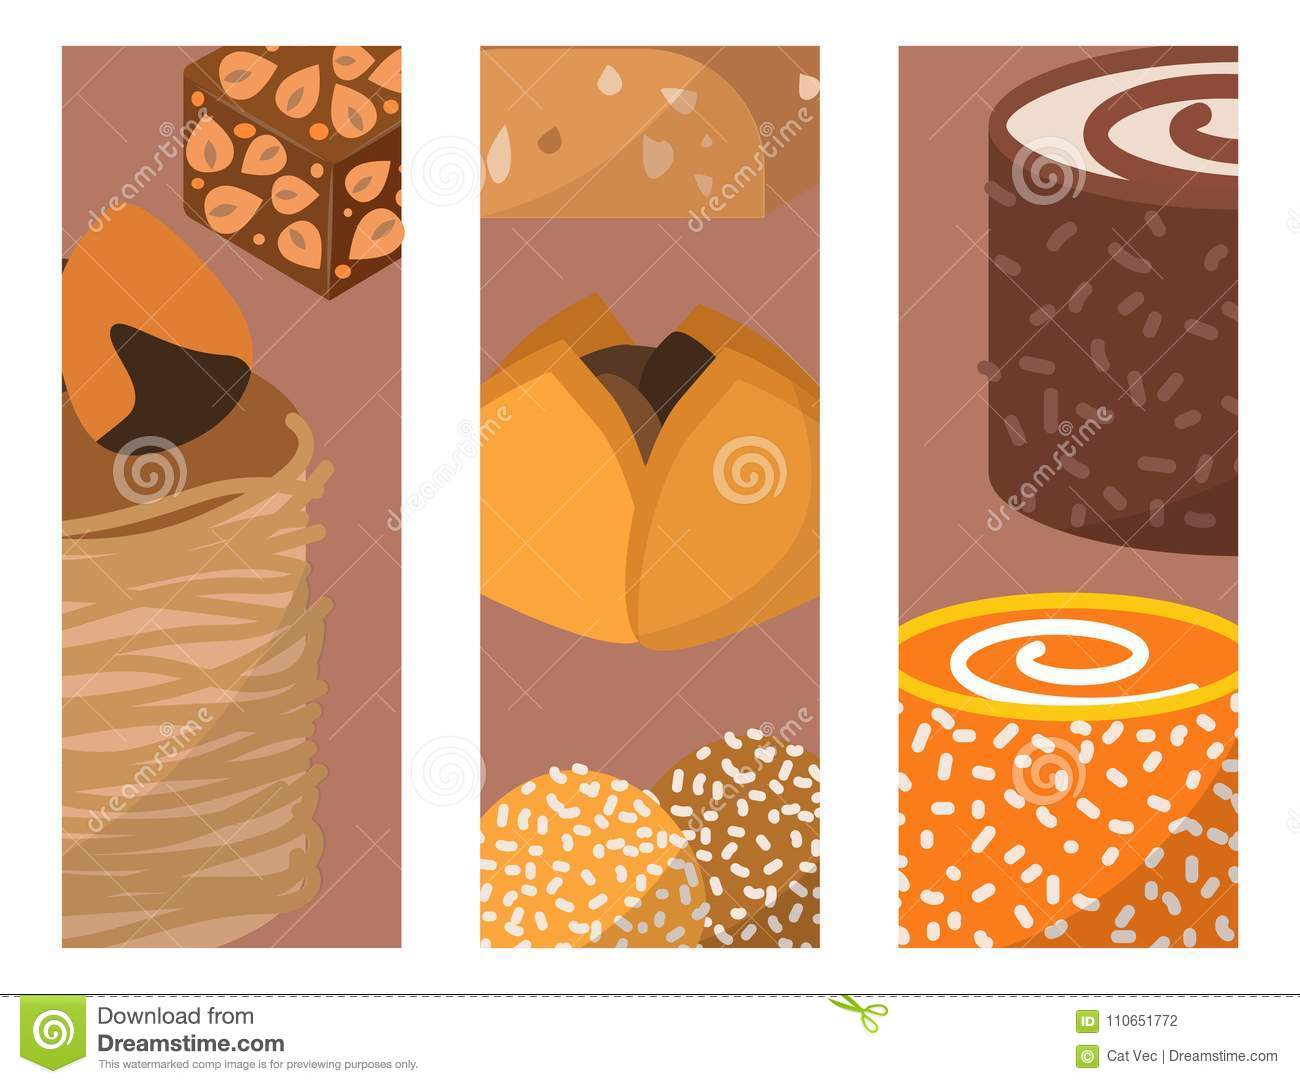 Sweets east delicious dessert food vector cards confectionery homemade assortment chocolate cake tasty bakery sweetness